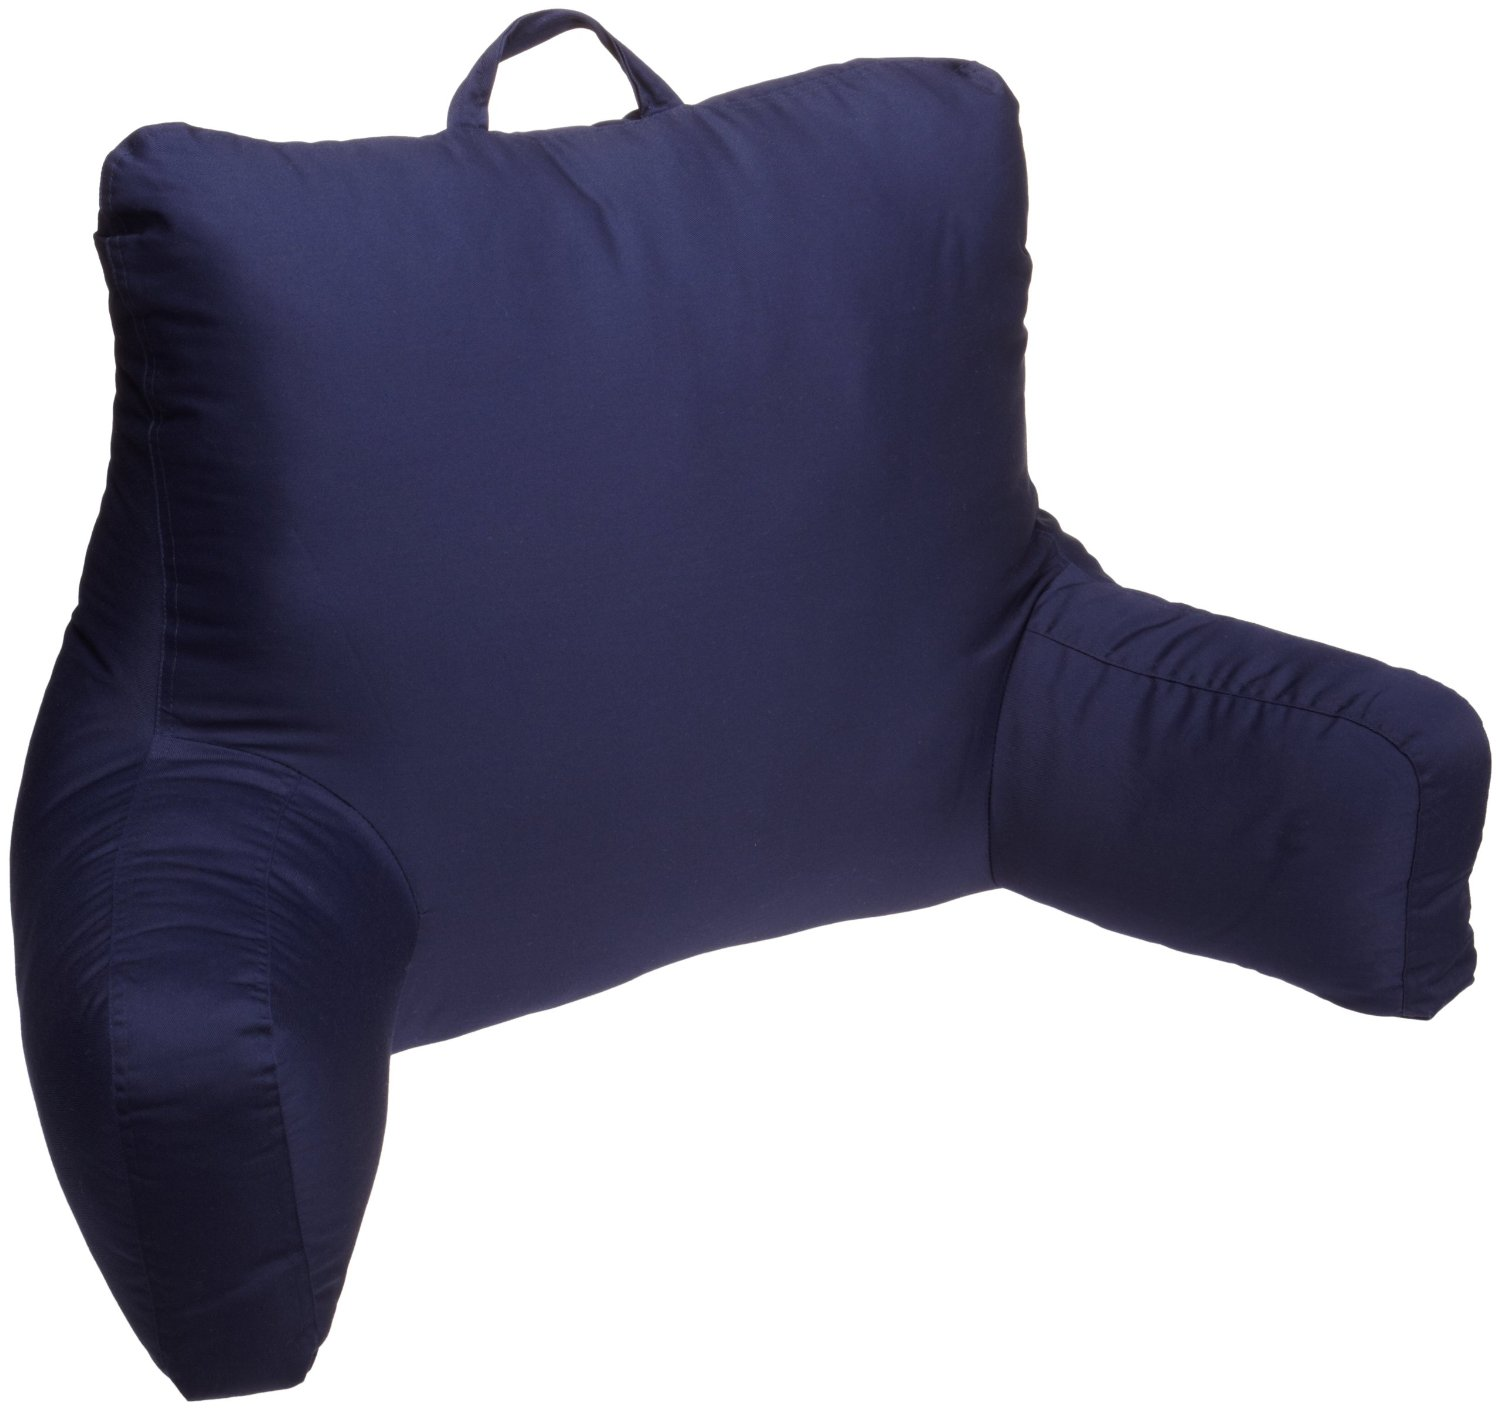 dark blue backrest pillow with arms